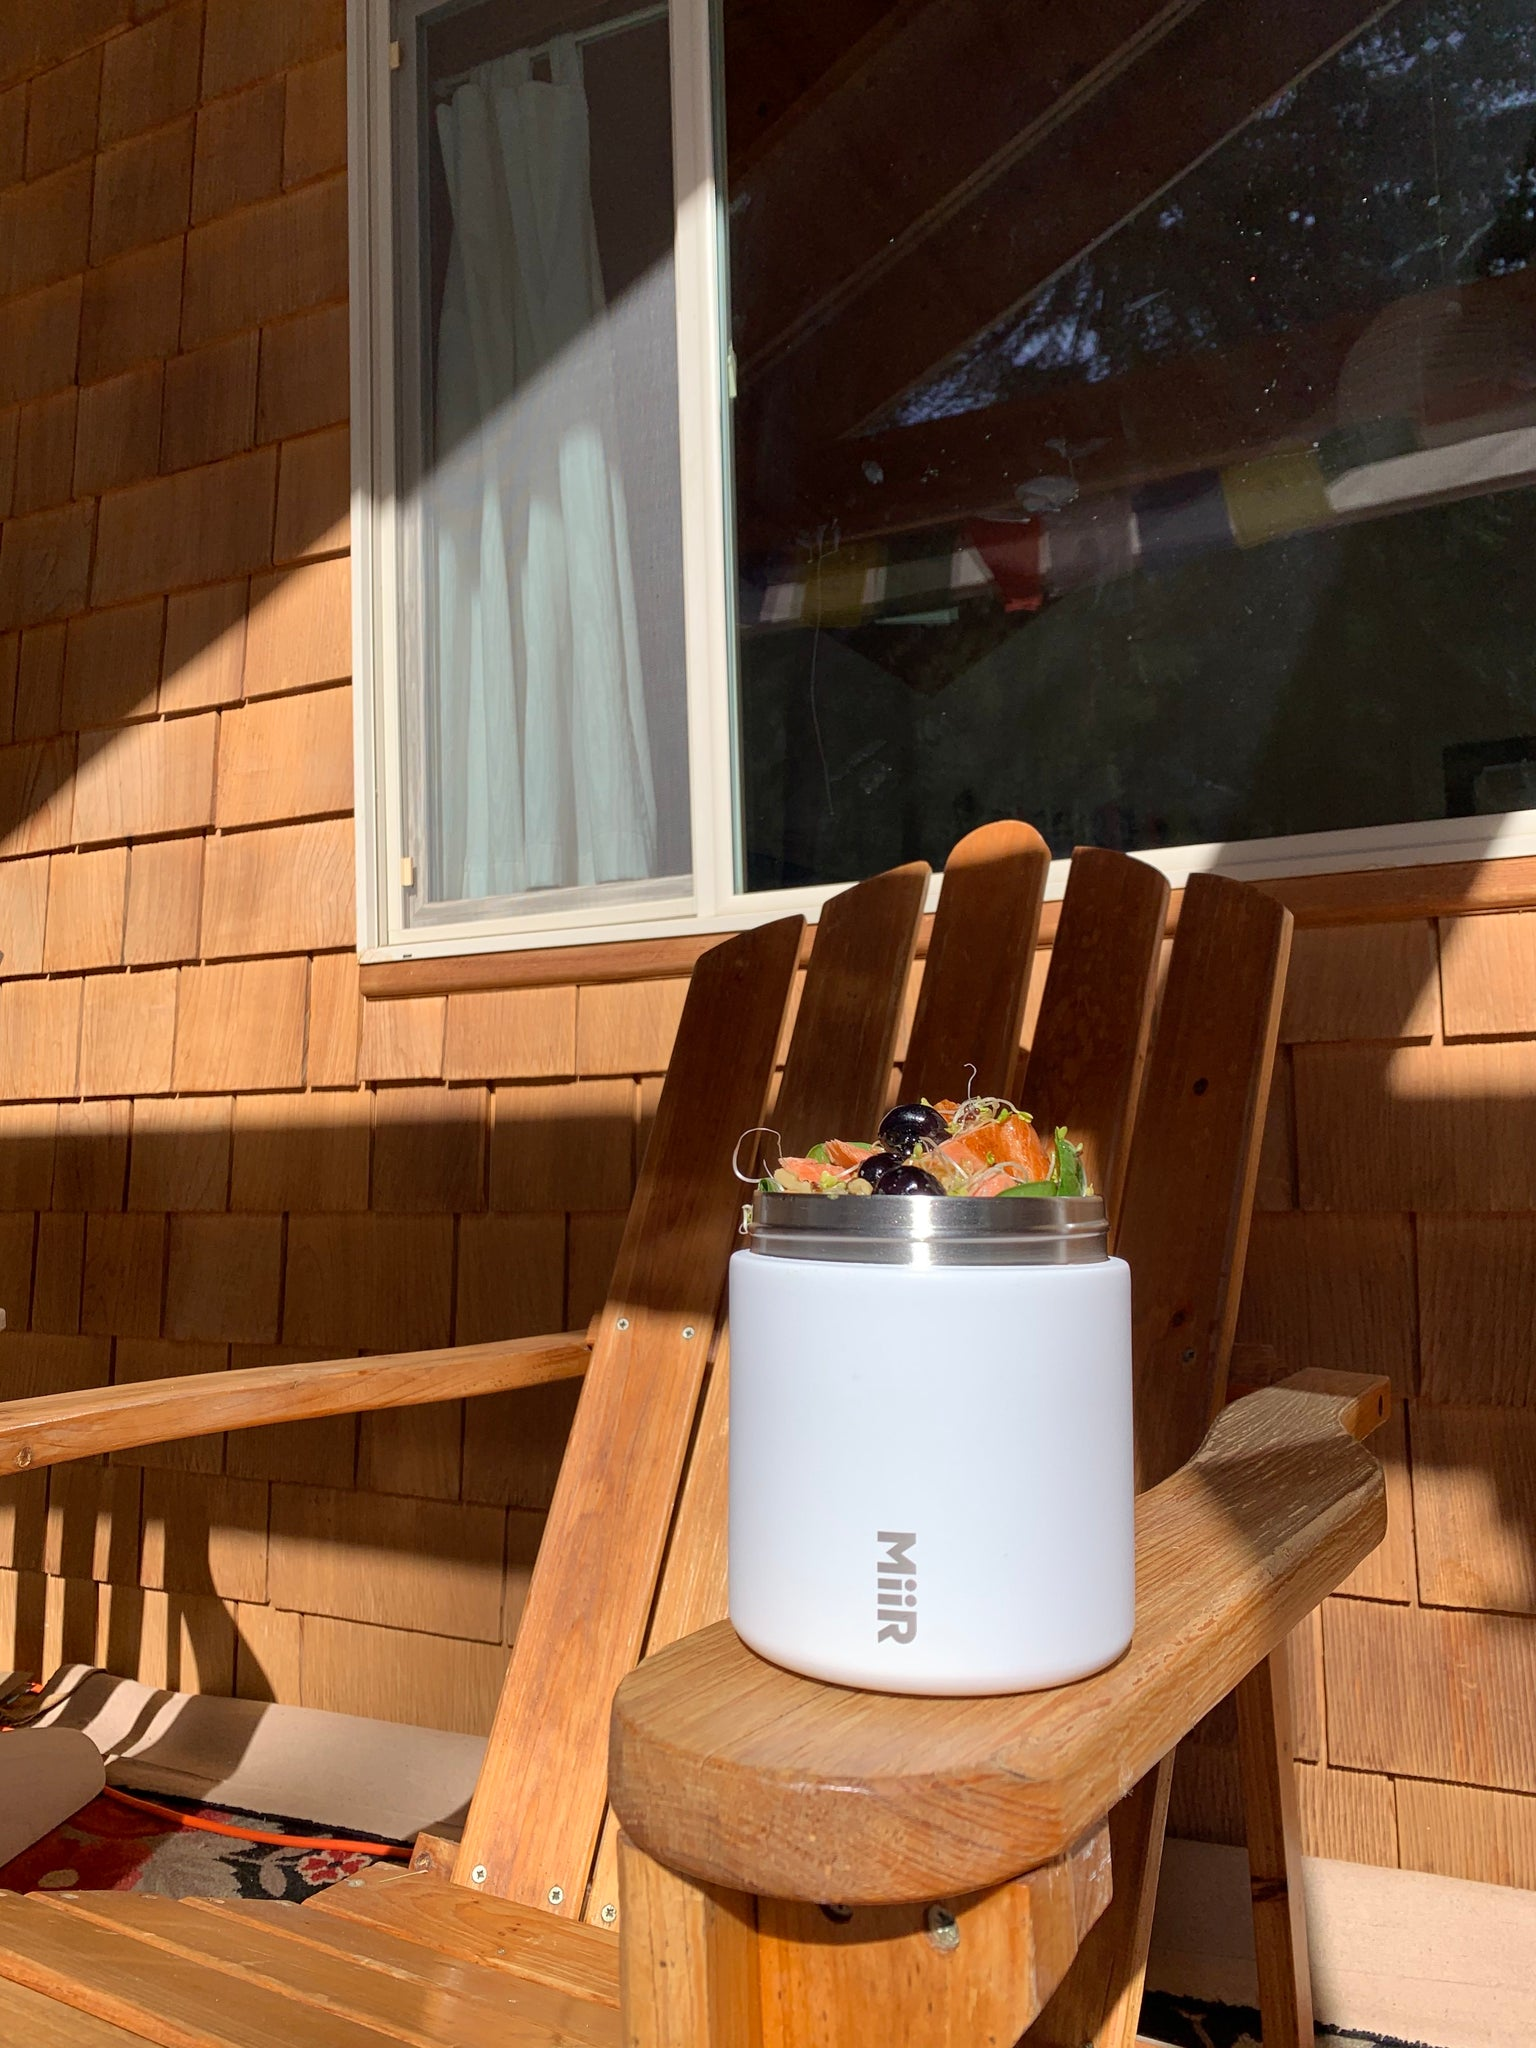 Spring Salad in the MiiR Food Canister